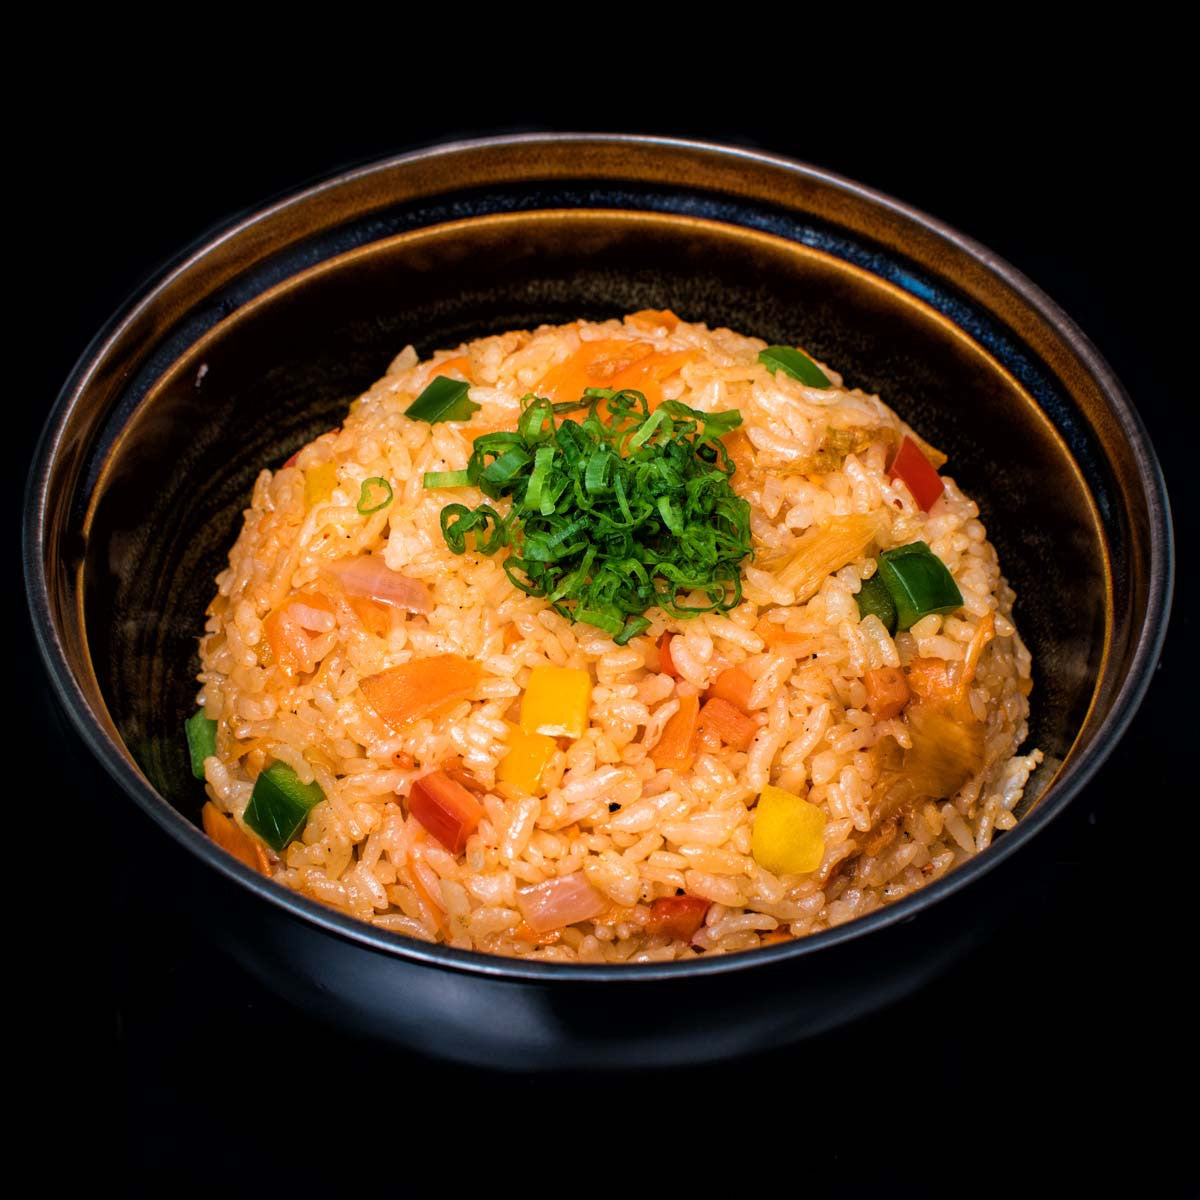 Kimchi Fried Rice with Vegetables